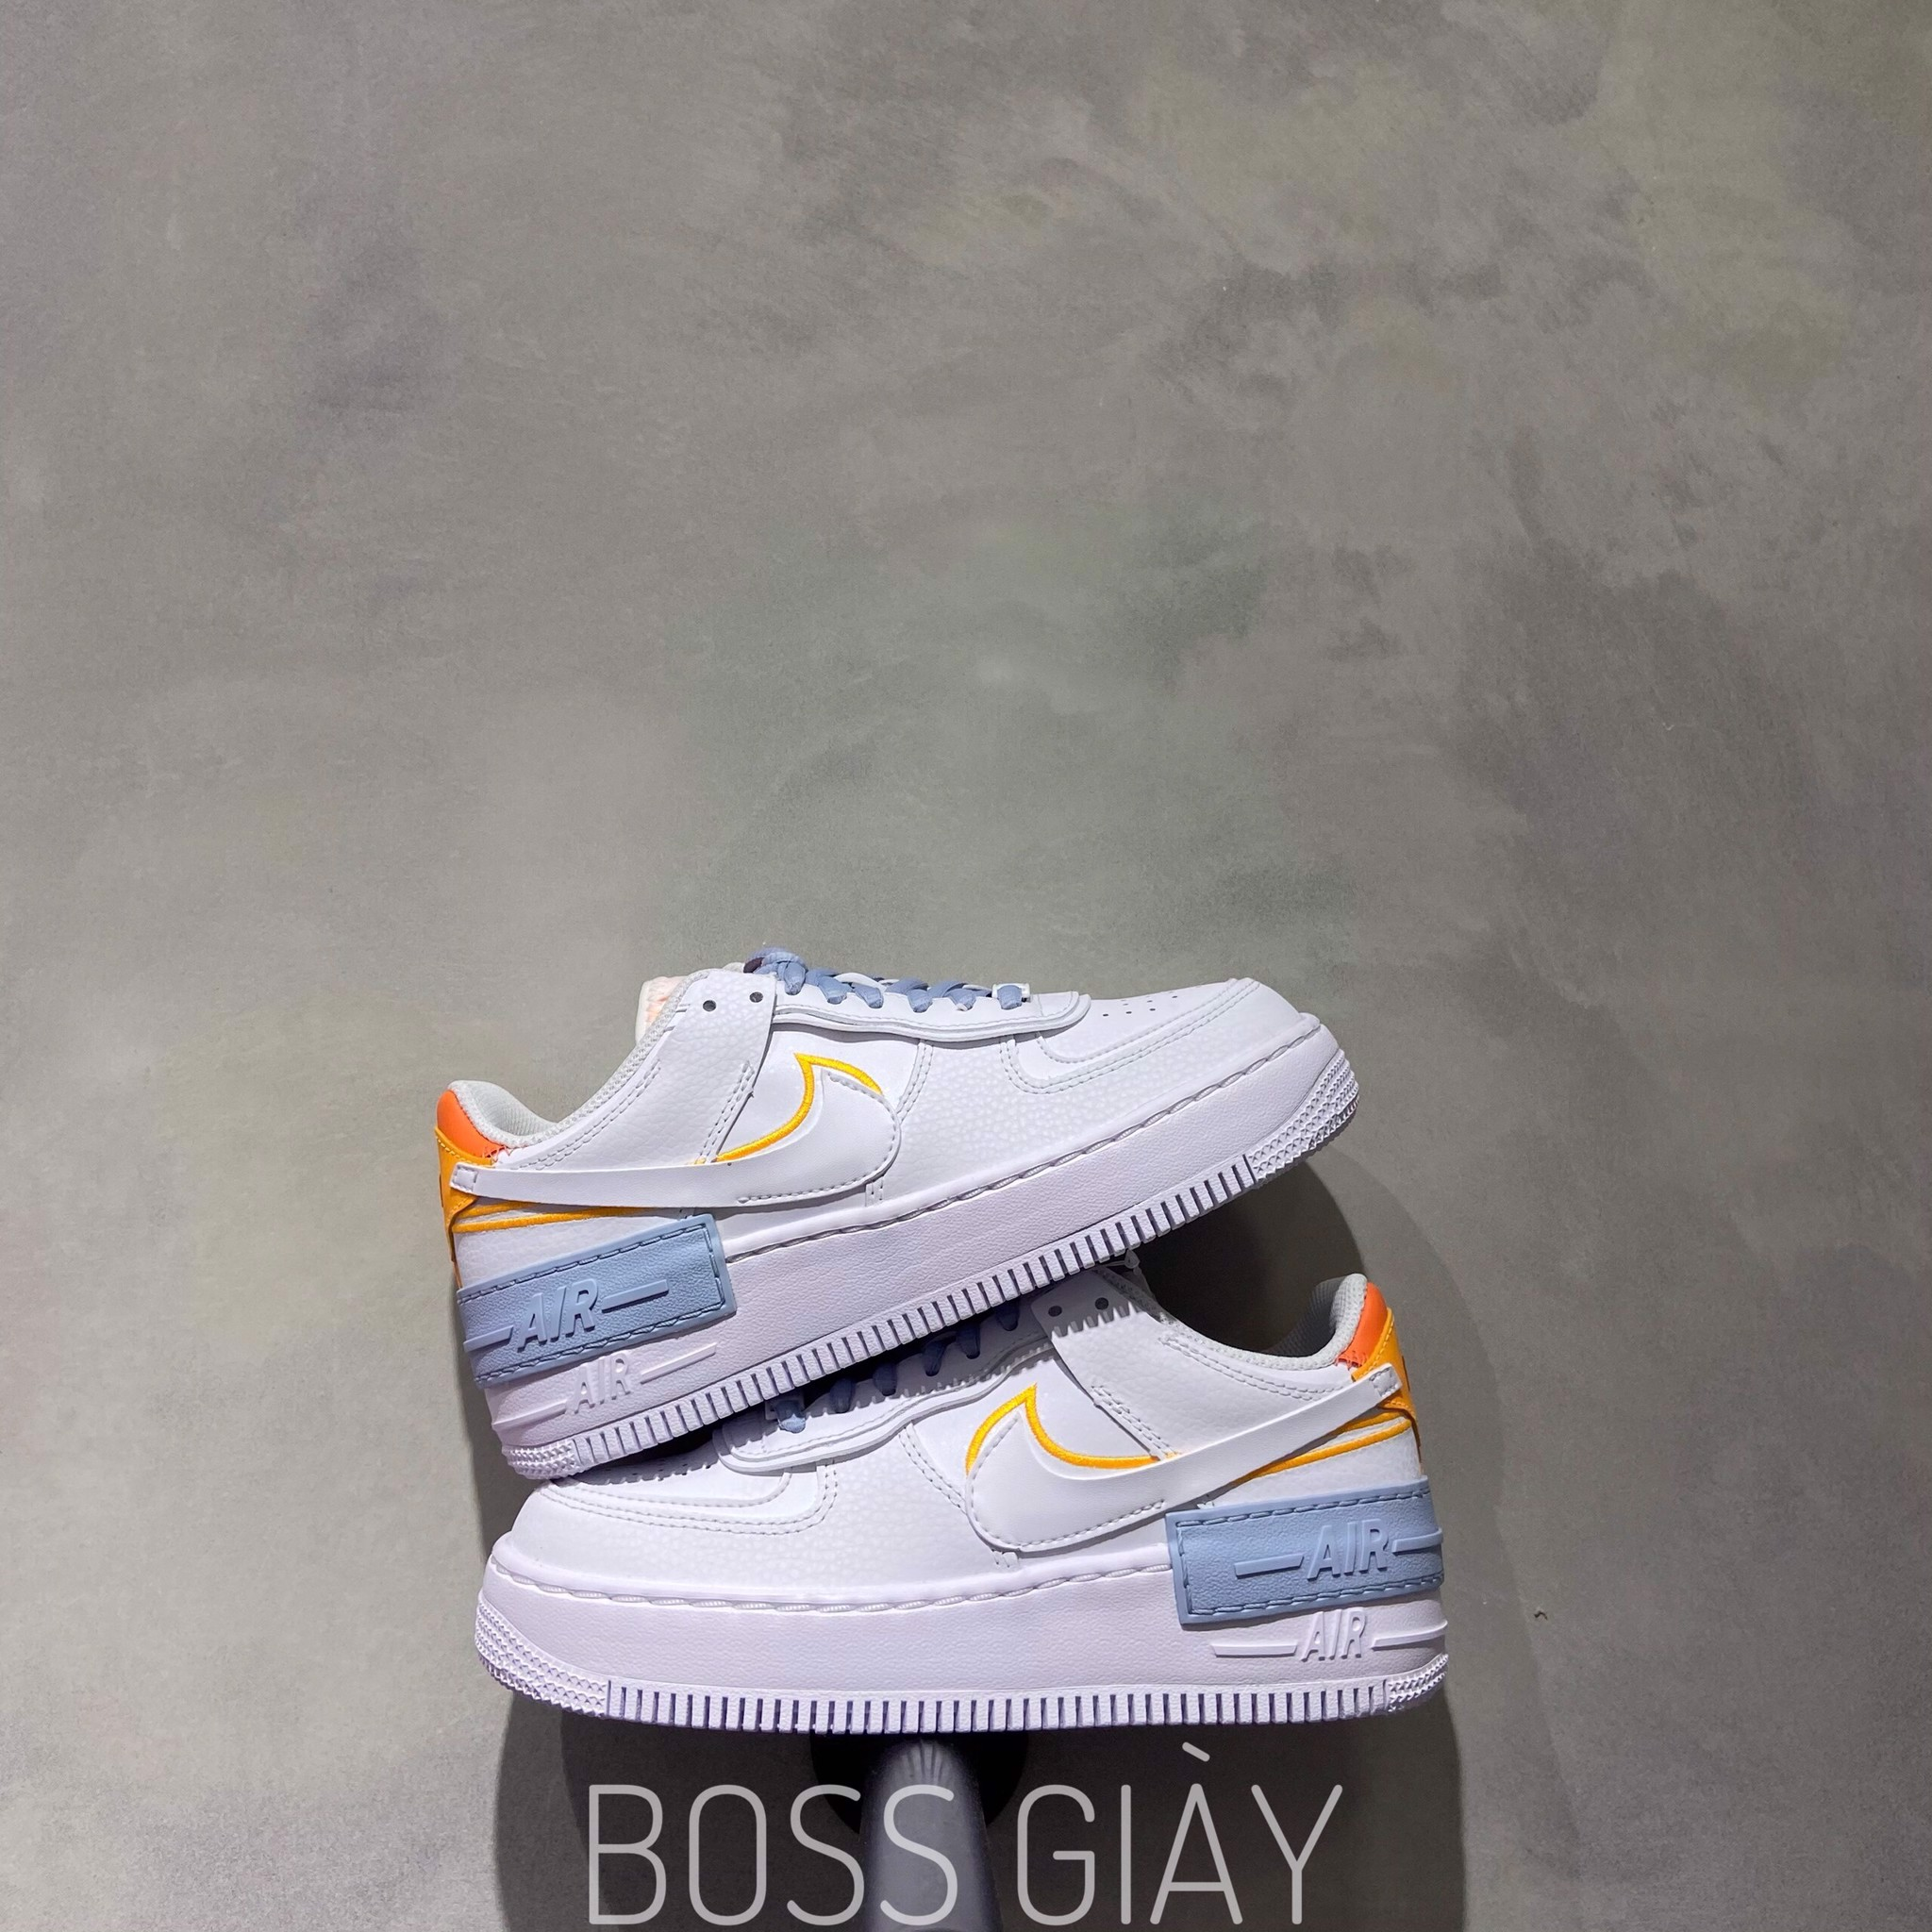 Dc2199 100 Nike Airforce 1 Shadow Bekind Boss Giay The nike women's air force 1 shadow 'be kind' celebrates world kindness day with a reconstructed take on the classic silhouette they include two eyestays, two swooshes and two heel tabs in varying orange hues, one marked with traditional nike branding. boss giay